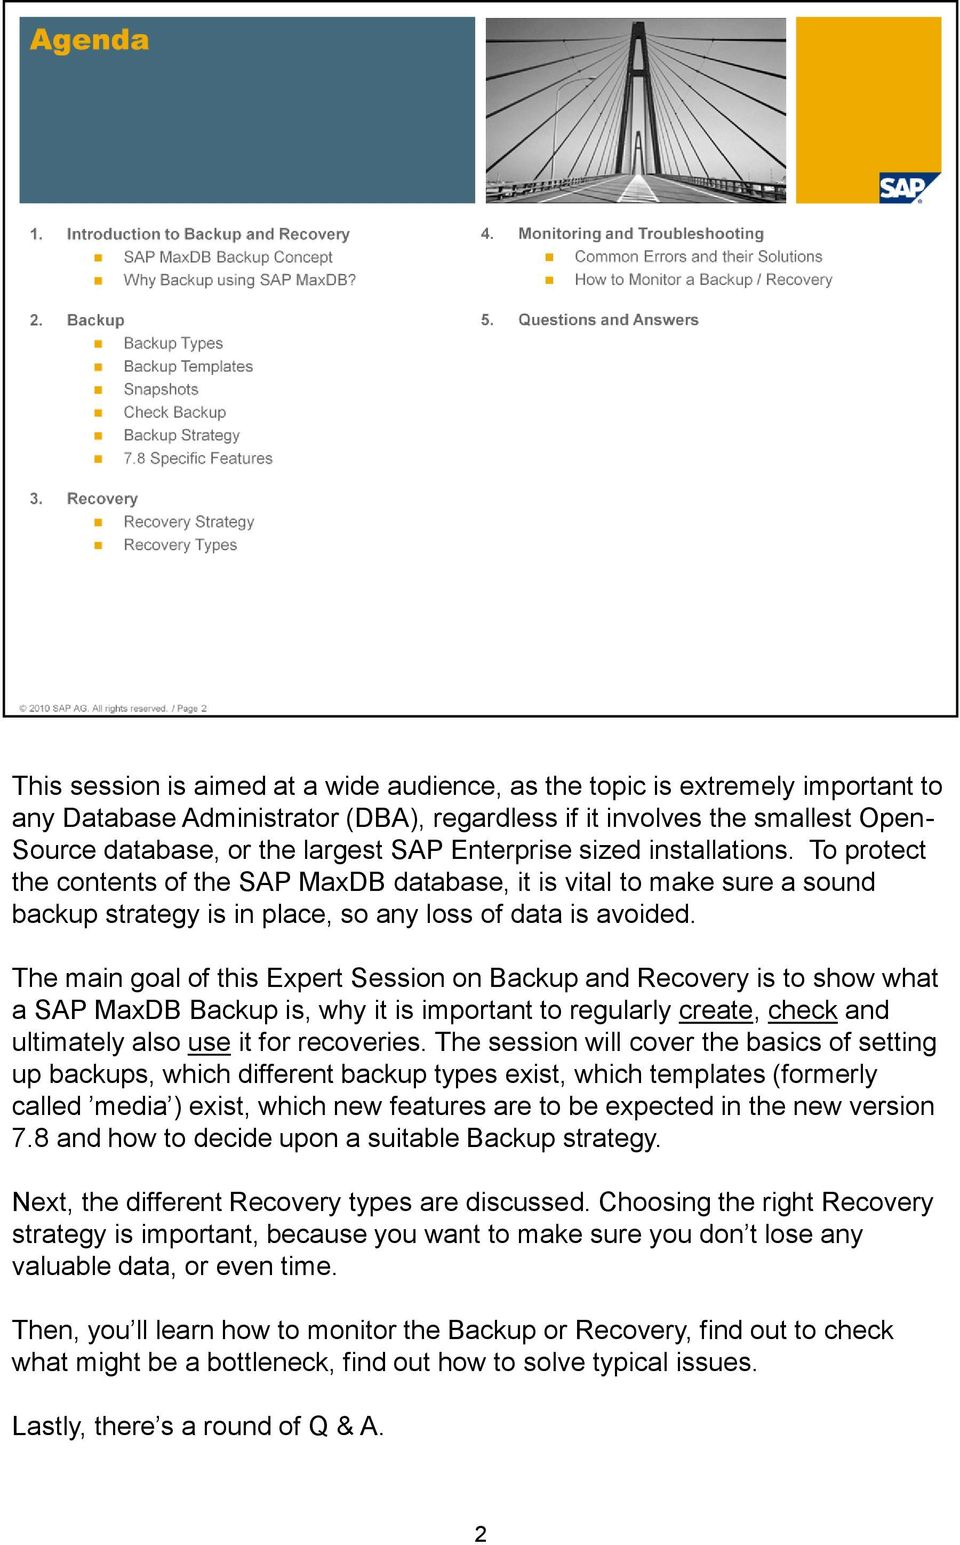 The main goal of this Expert Session on Backup and Recovery is to show what a SAP MaxDB Backup is, why it is important to regularly create, check and ultimately also use it for recoveries.